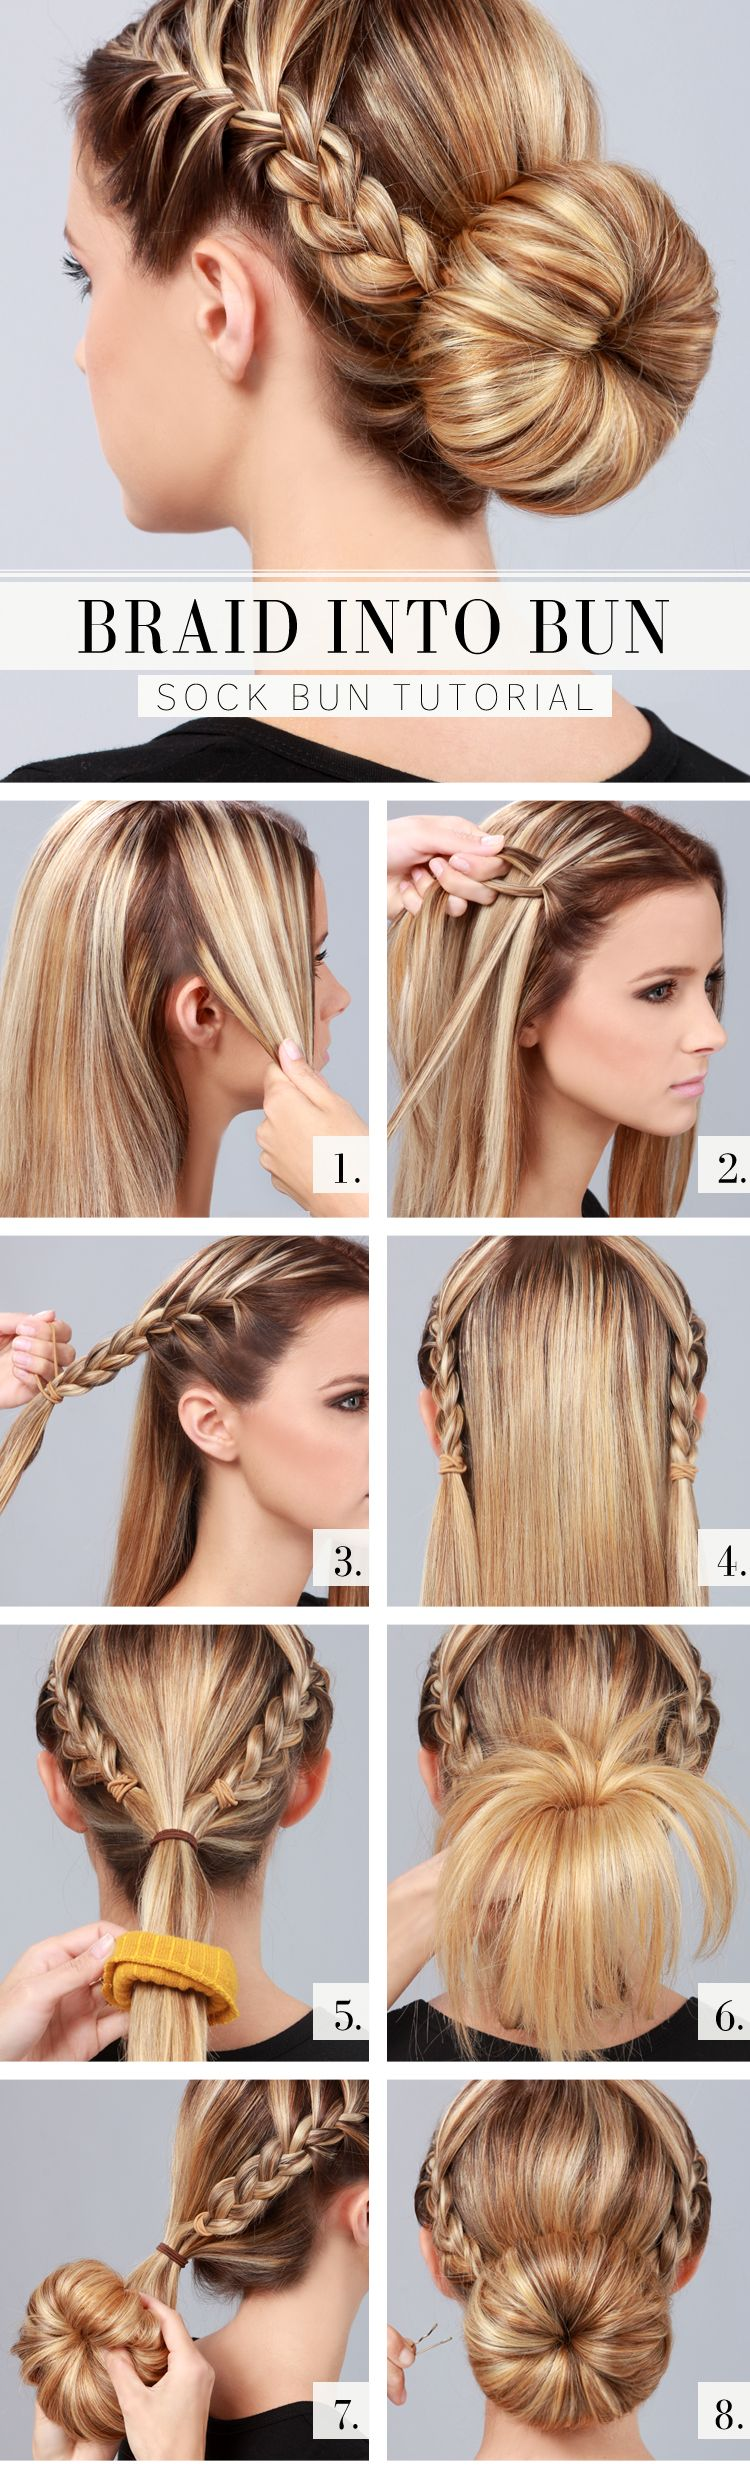 Sock Bun Hairstyle Tutorial  Braid Into A Bun Tutorial  Summer Hair  Styles  Top